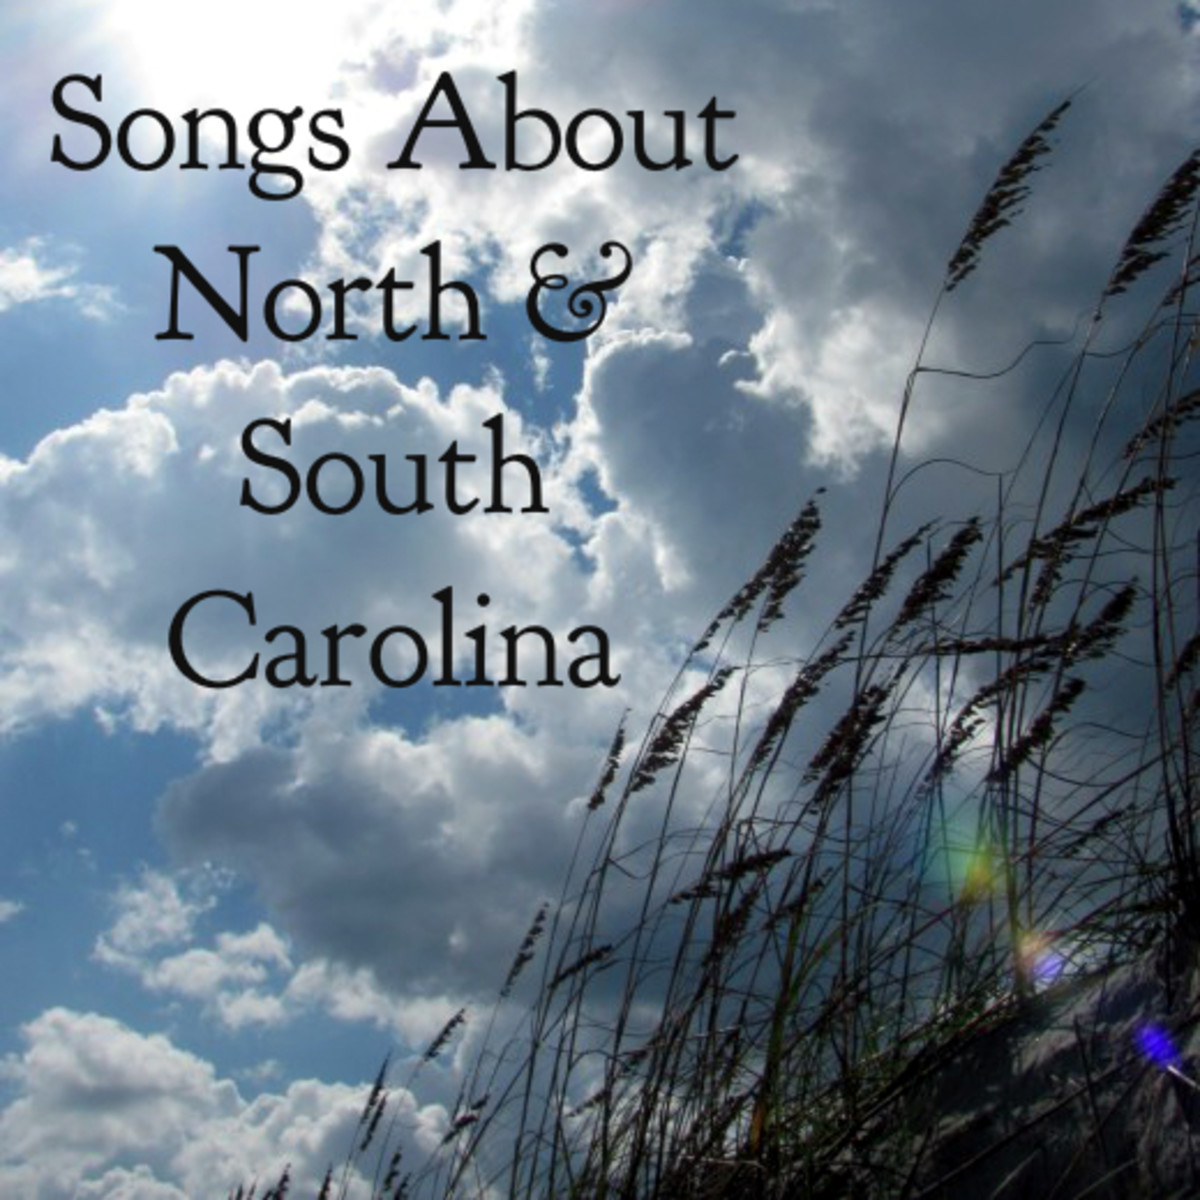 53 Songs About North Carolina and South Carolina